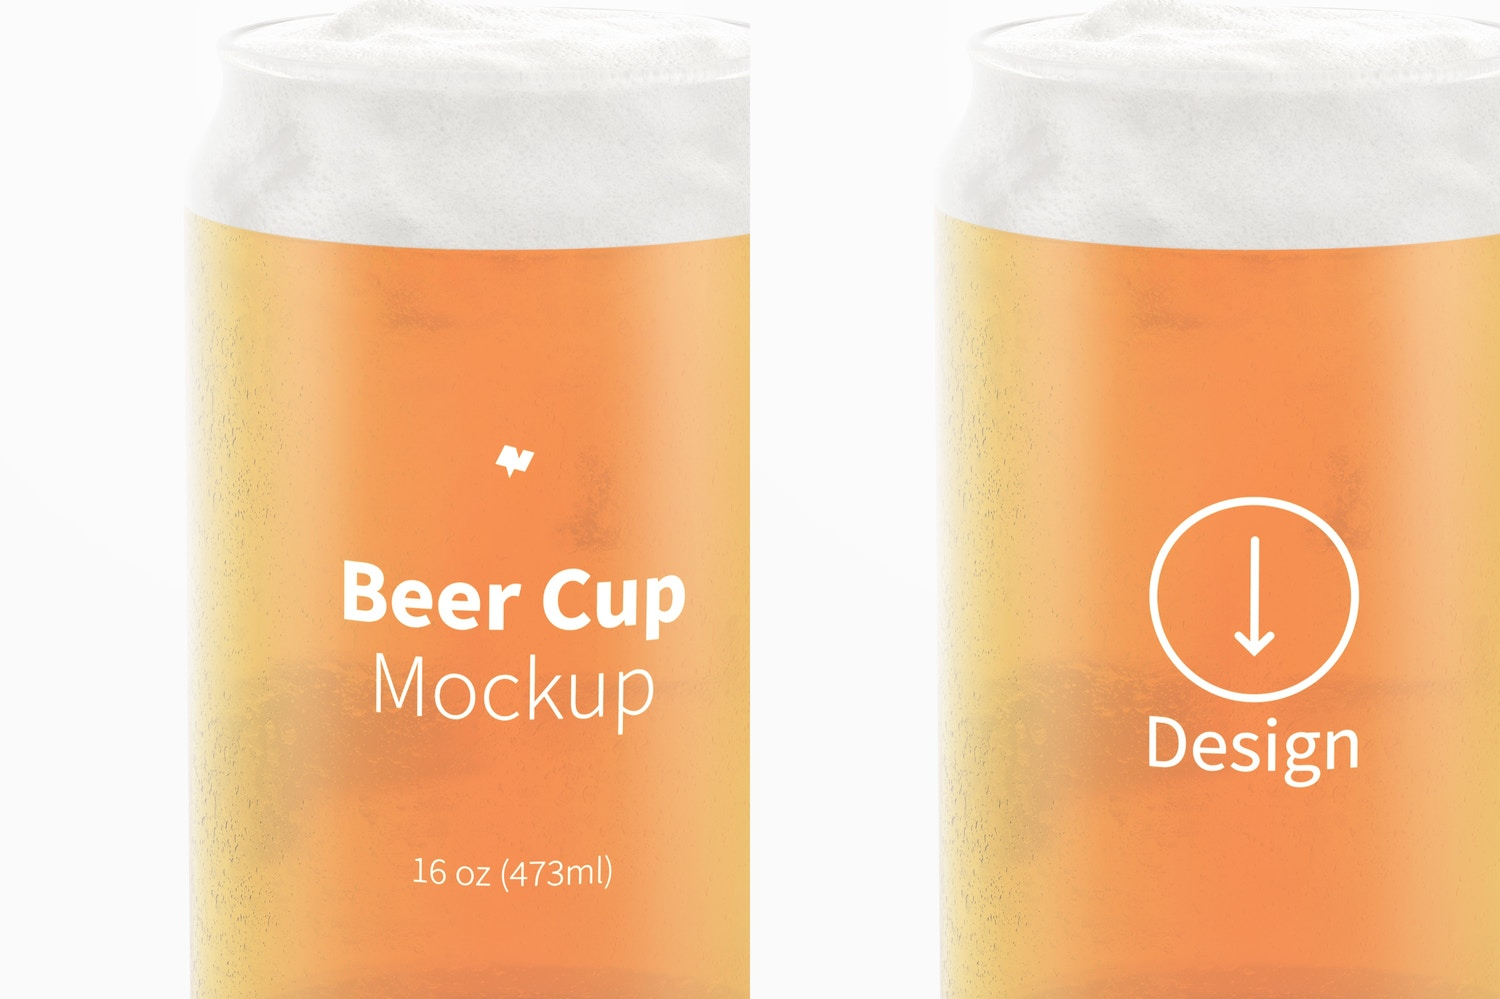 16 oz Glass Beer Cup Mockup, Close Up